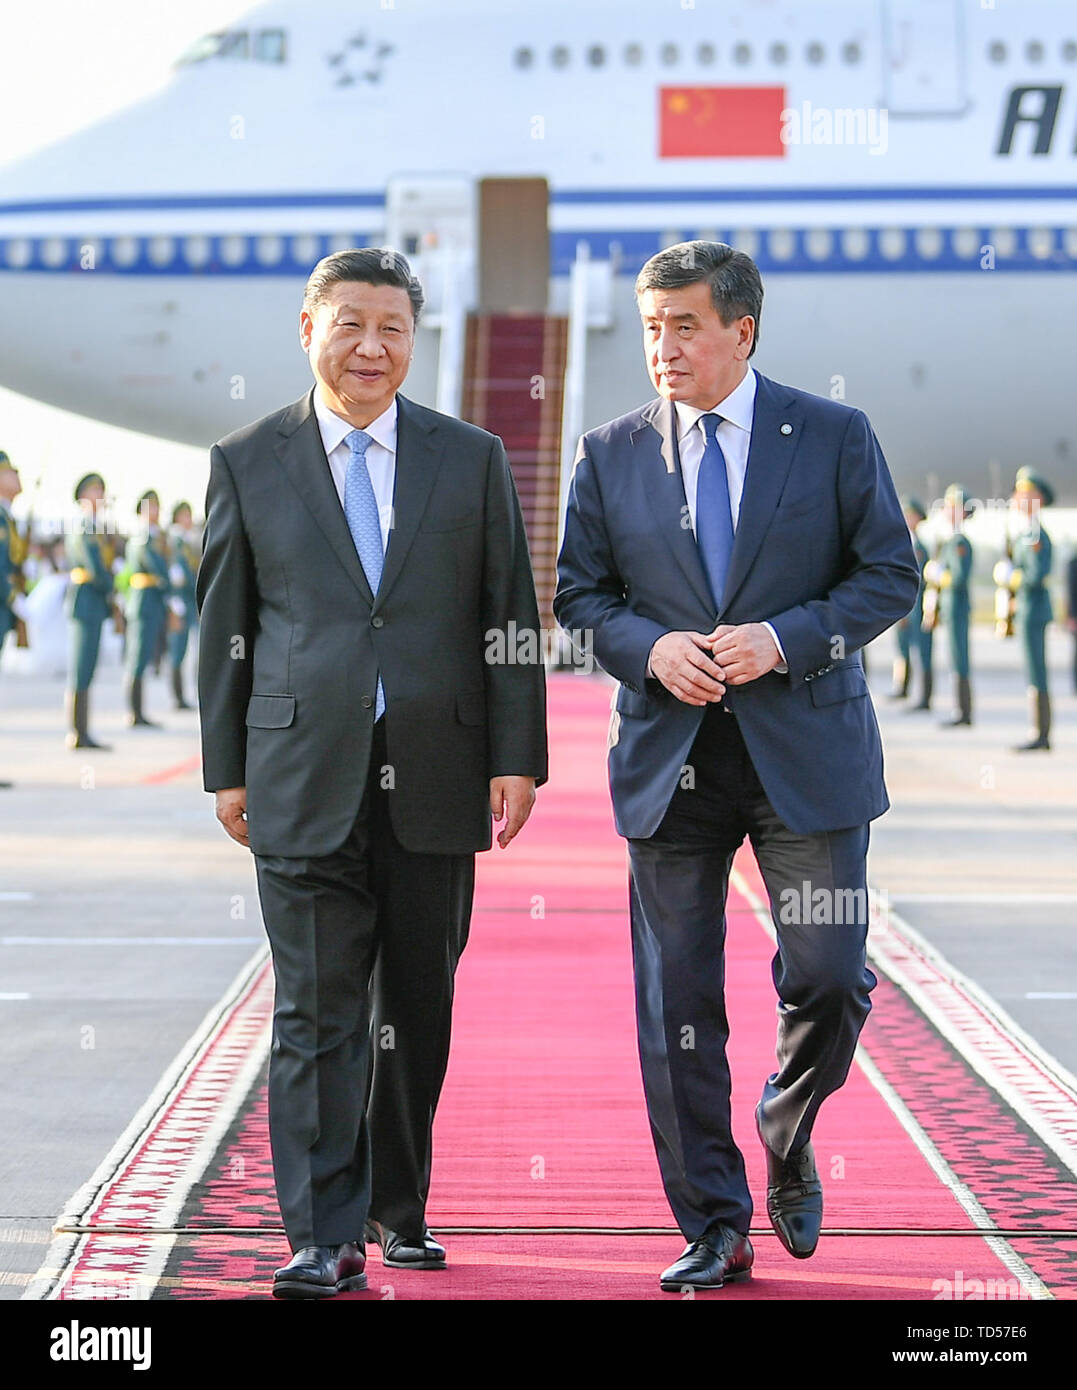 Bishkek, Kyrgyzstan. 12th June, 2019. Chinese President Xi Jinping has a cordial talk with his Kyrgyz counterpart Sooronbay Jeenbekov upon his arrival in Bishkek, Kyrgyzstan, June 12, 2019. Xi arrived here Wednesday for a state visit to Kyrgyzstan and the 19th Shanghai Cooperation Organization (SCO) summit. Credit: Xie Huanchi/Xinhua/Alamy Live News - Stock Image